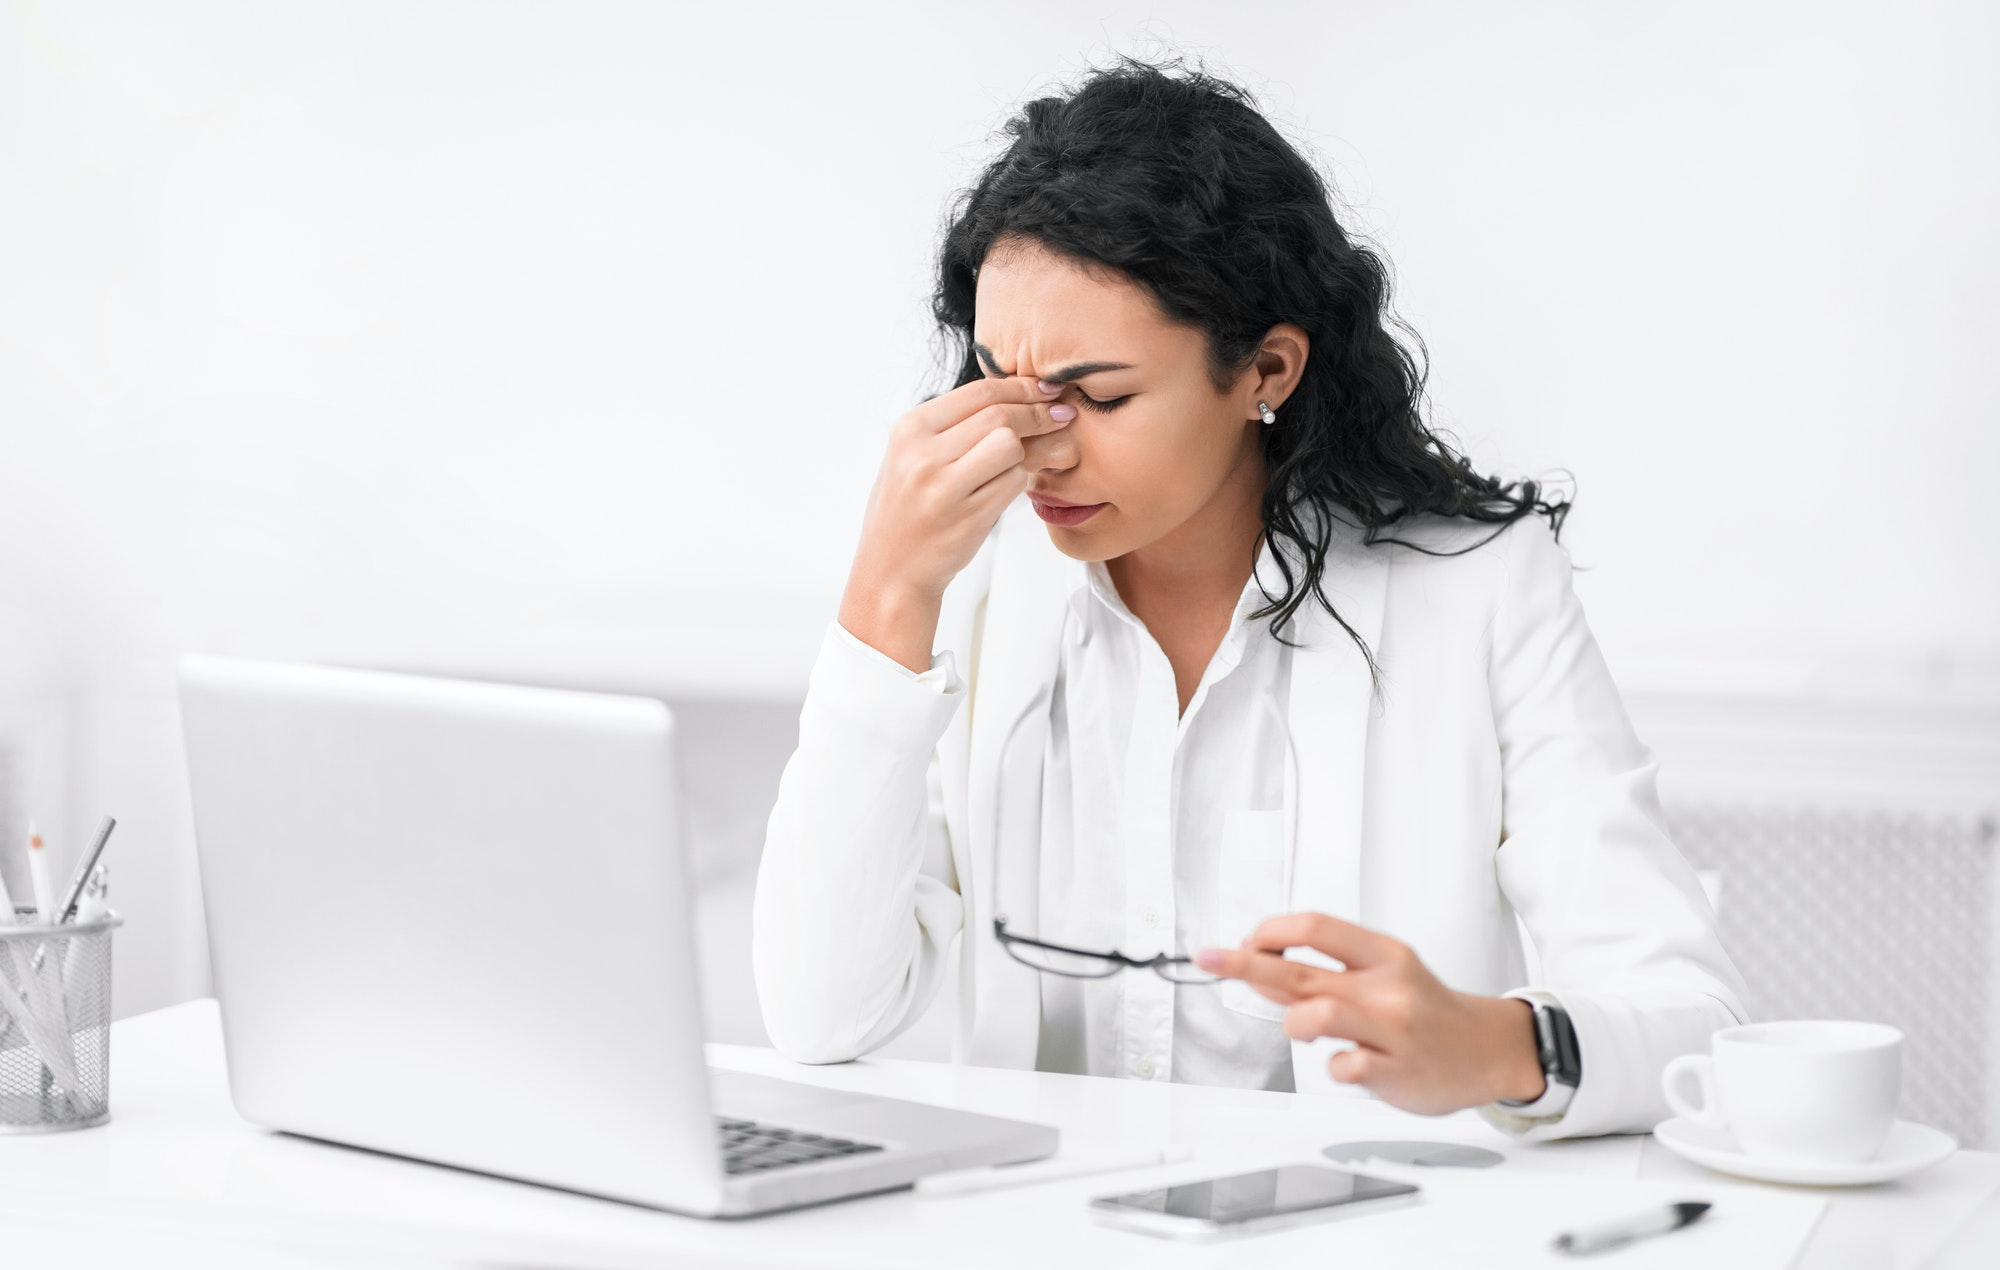 Exhausted latin manager massaging nose while using laptop